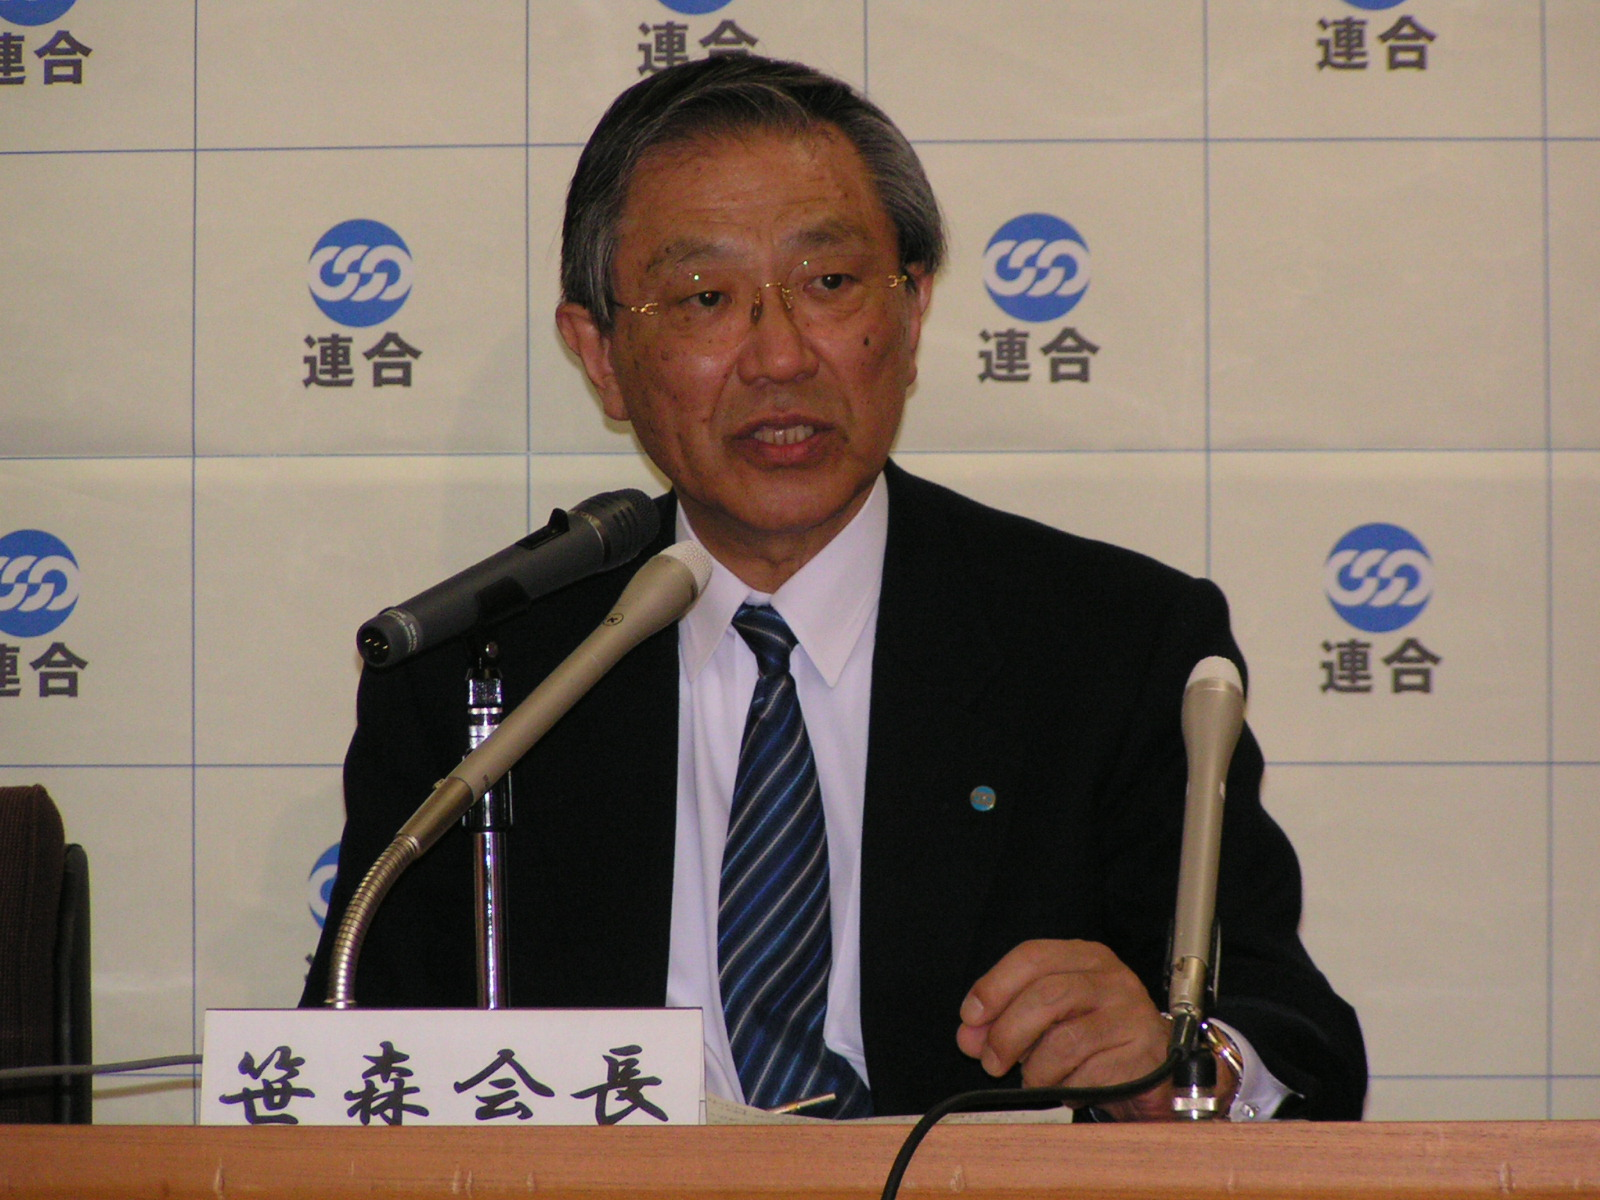 Photo: President Sasamori praises efforts. (March 23, RENGO Headquarters)